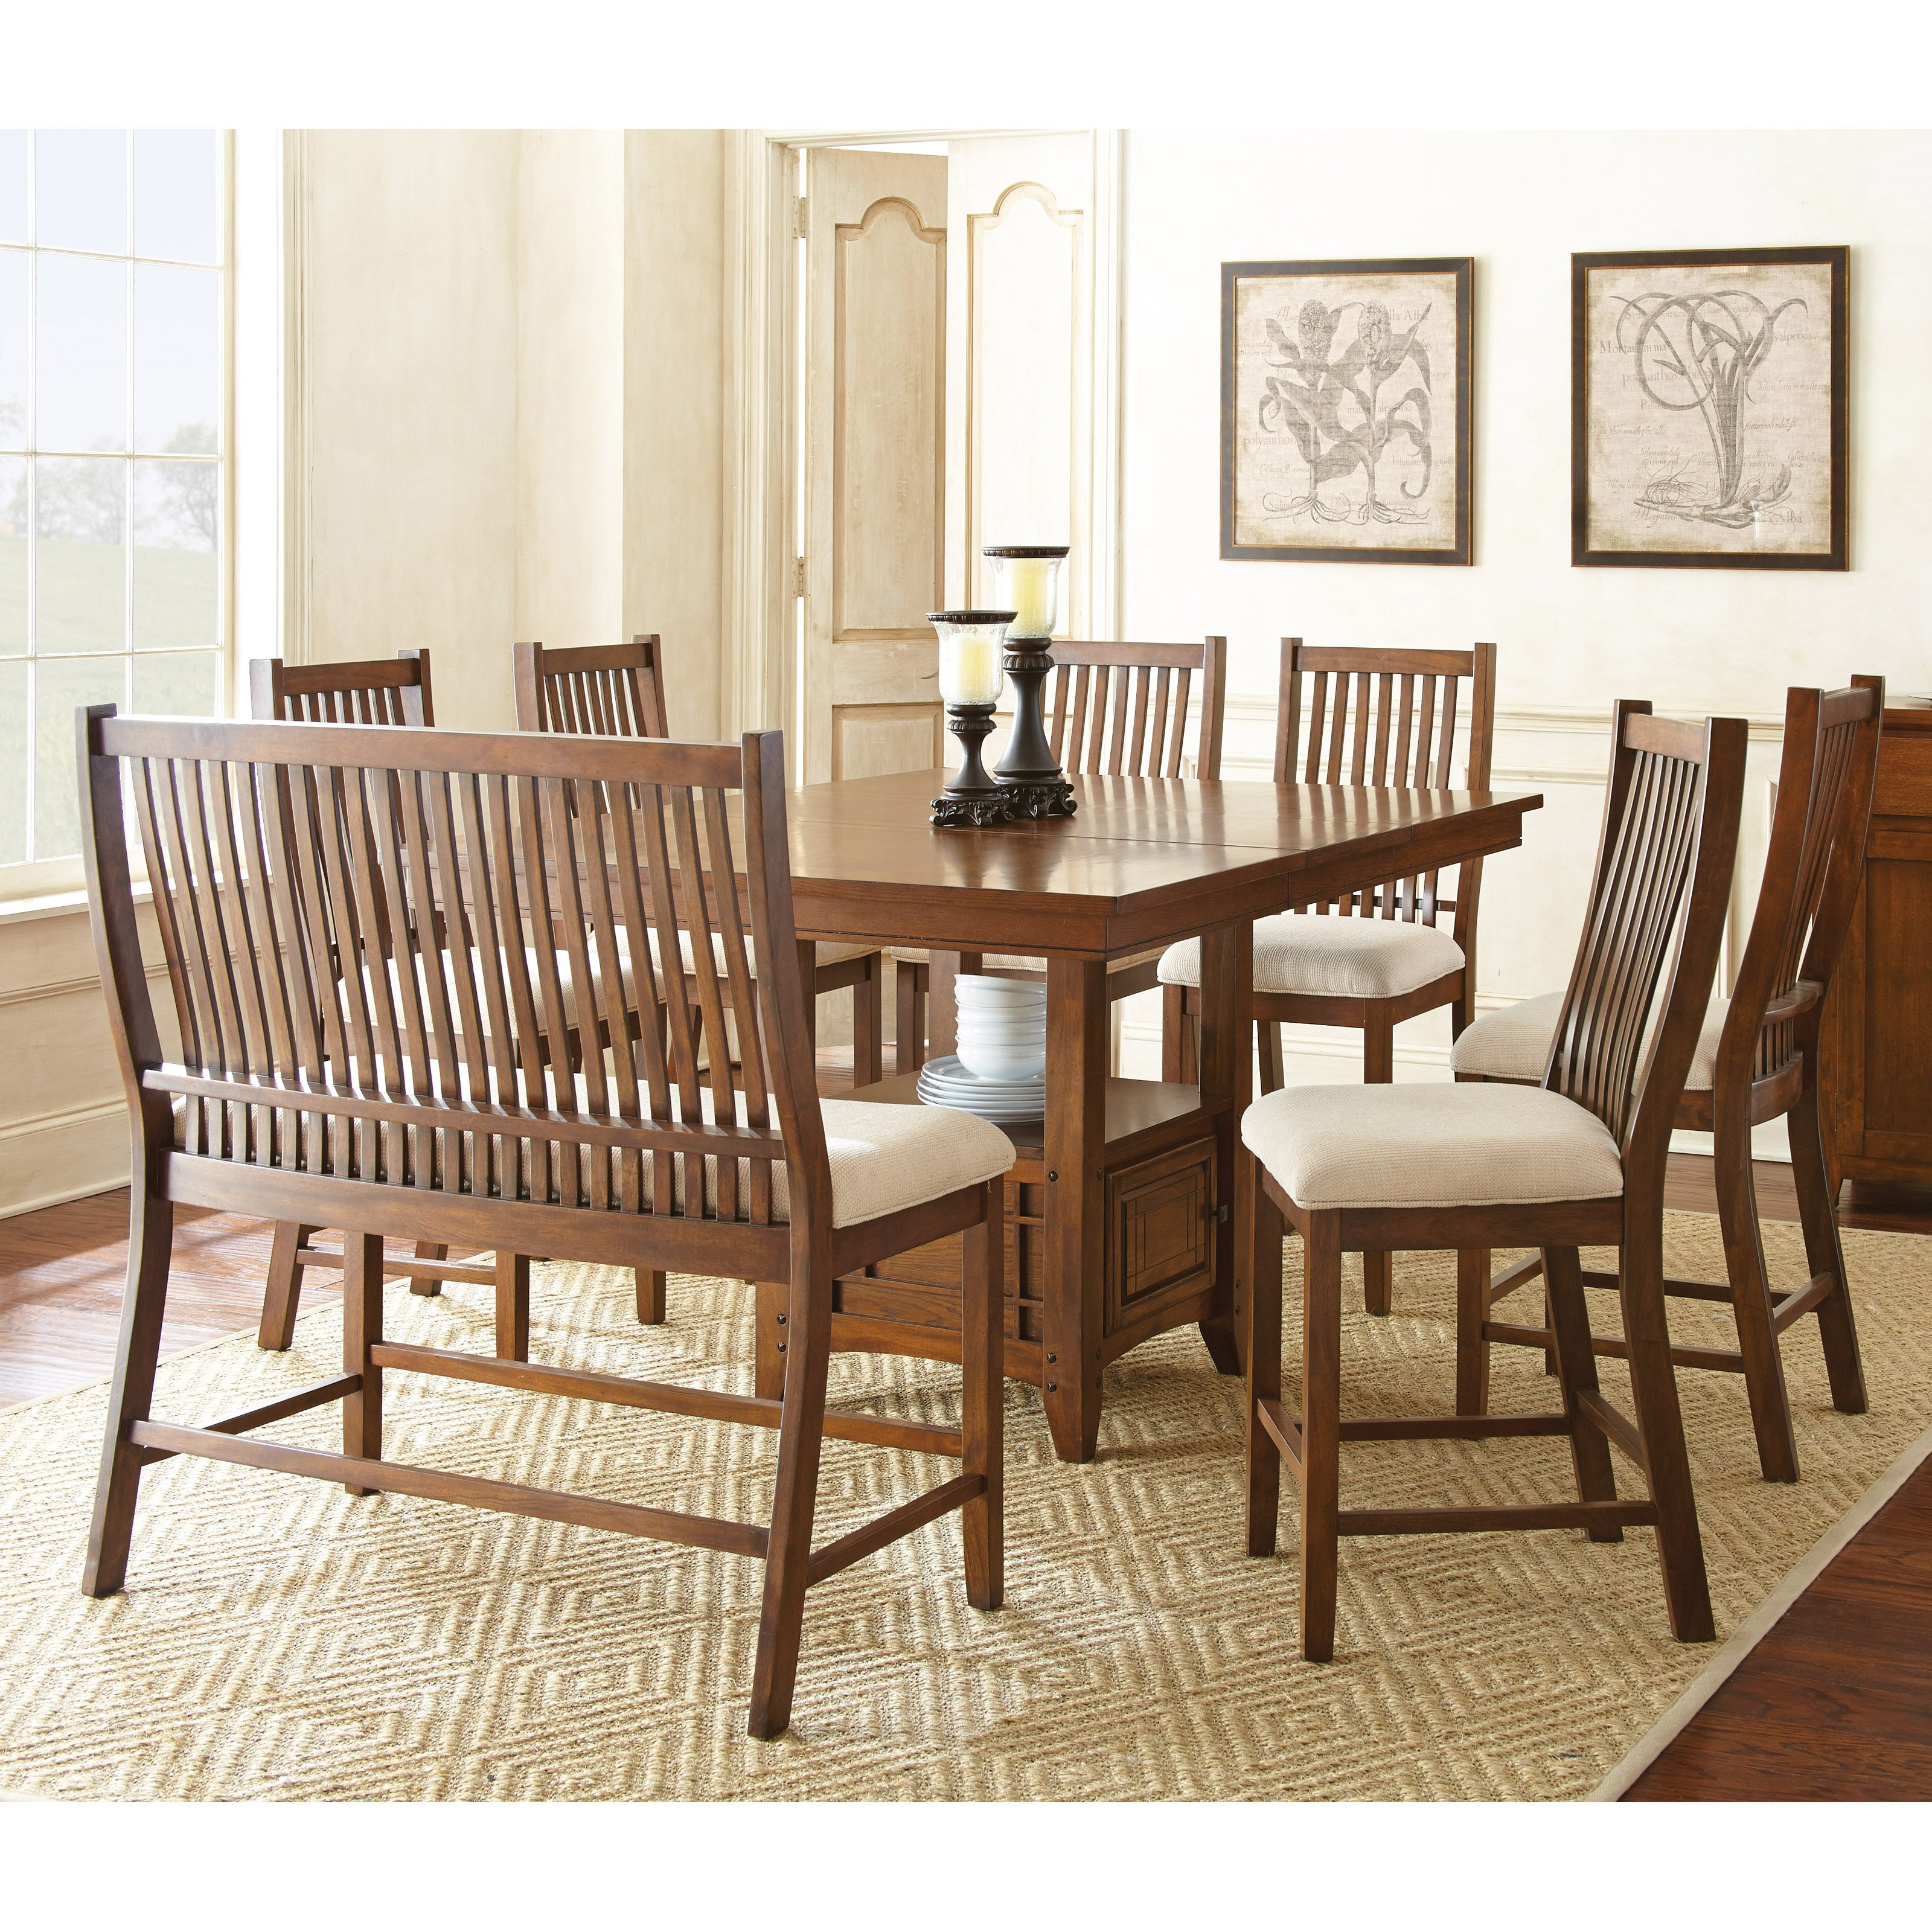 Steve Silver 8 Piece Kayan Counter Height Dining Table Set   Walmart.com